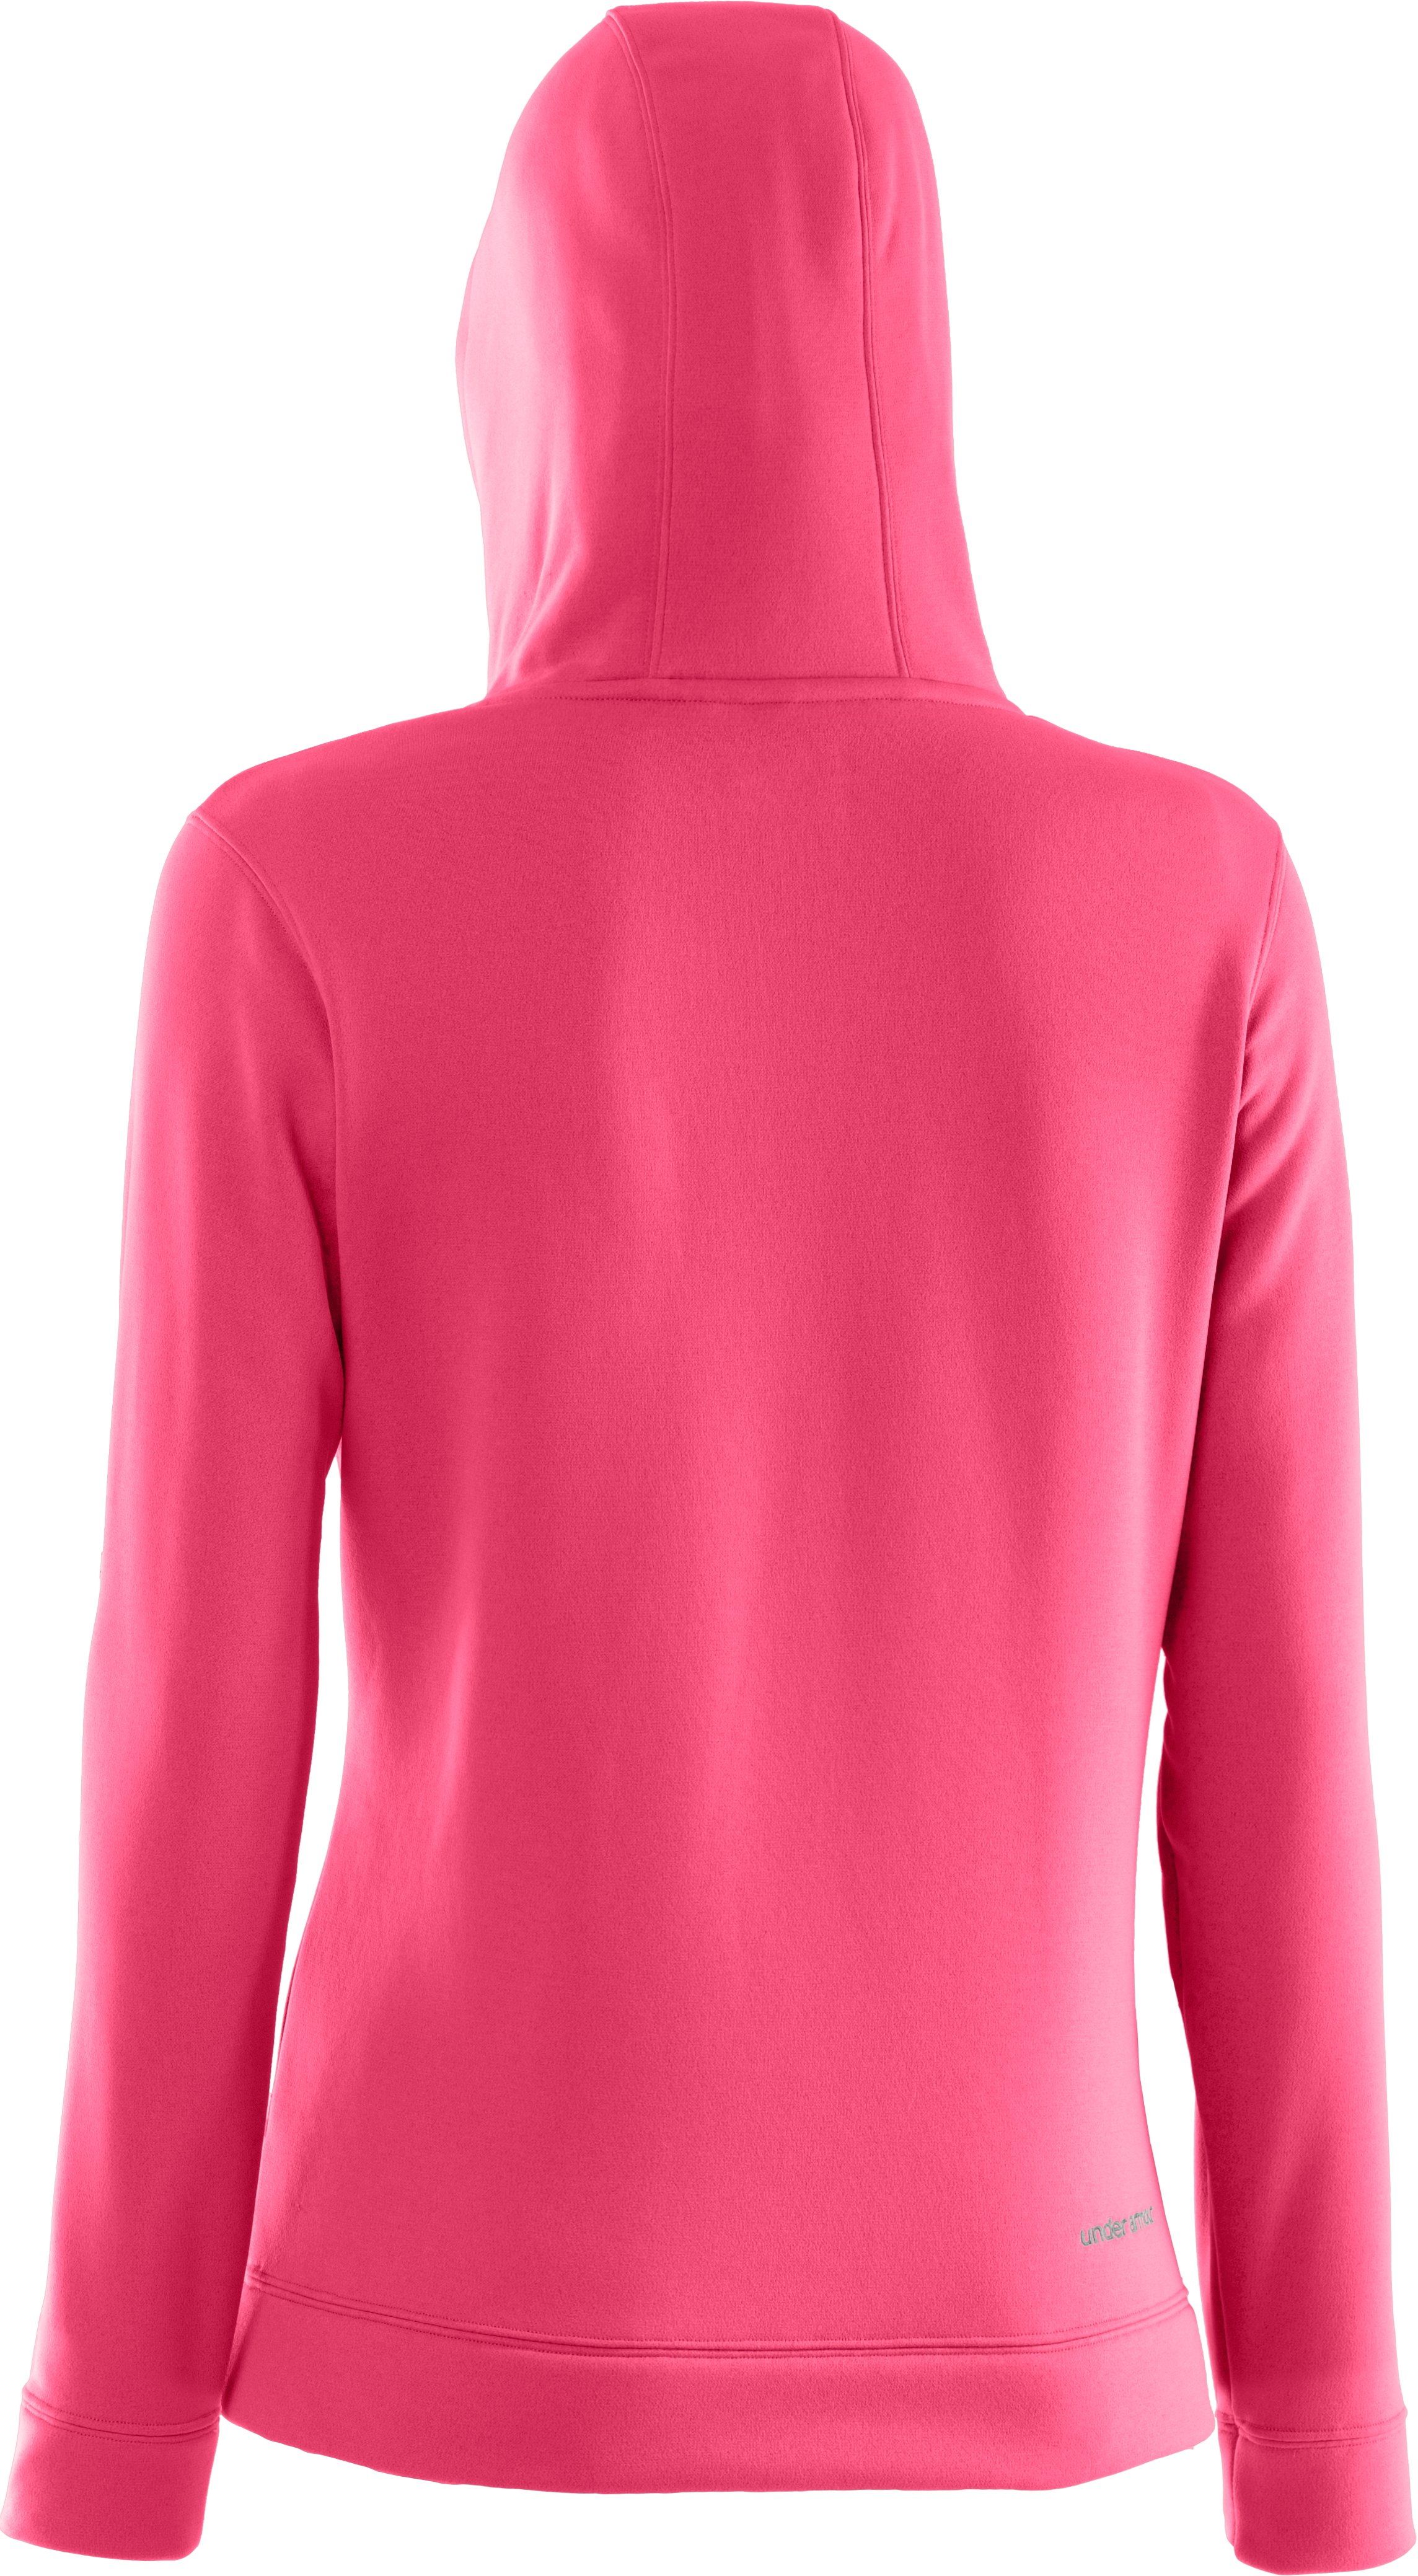 Women's  UA Storm Tackle Twill Hoodie, Perfection, undefined